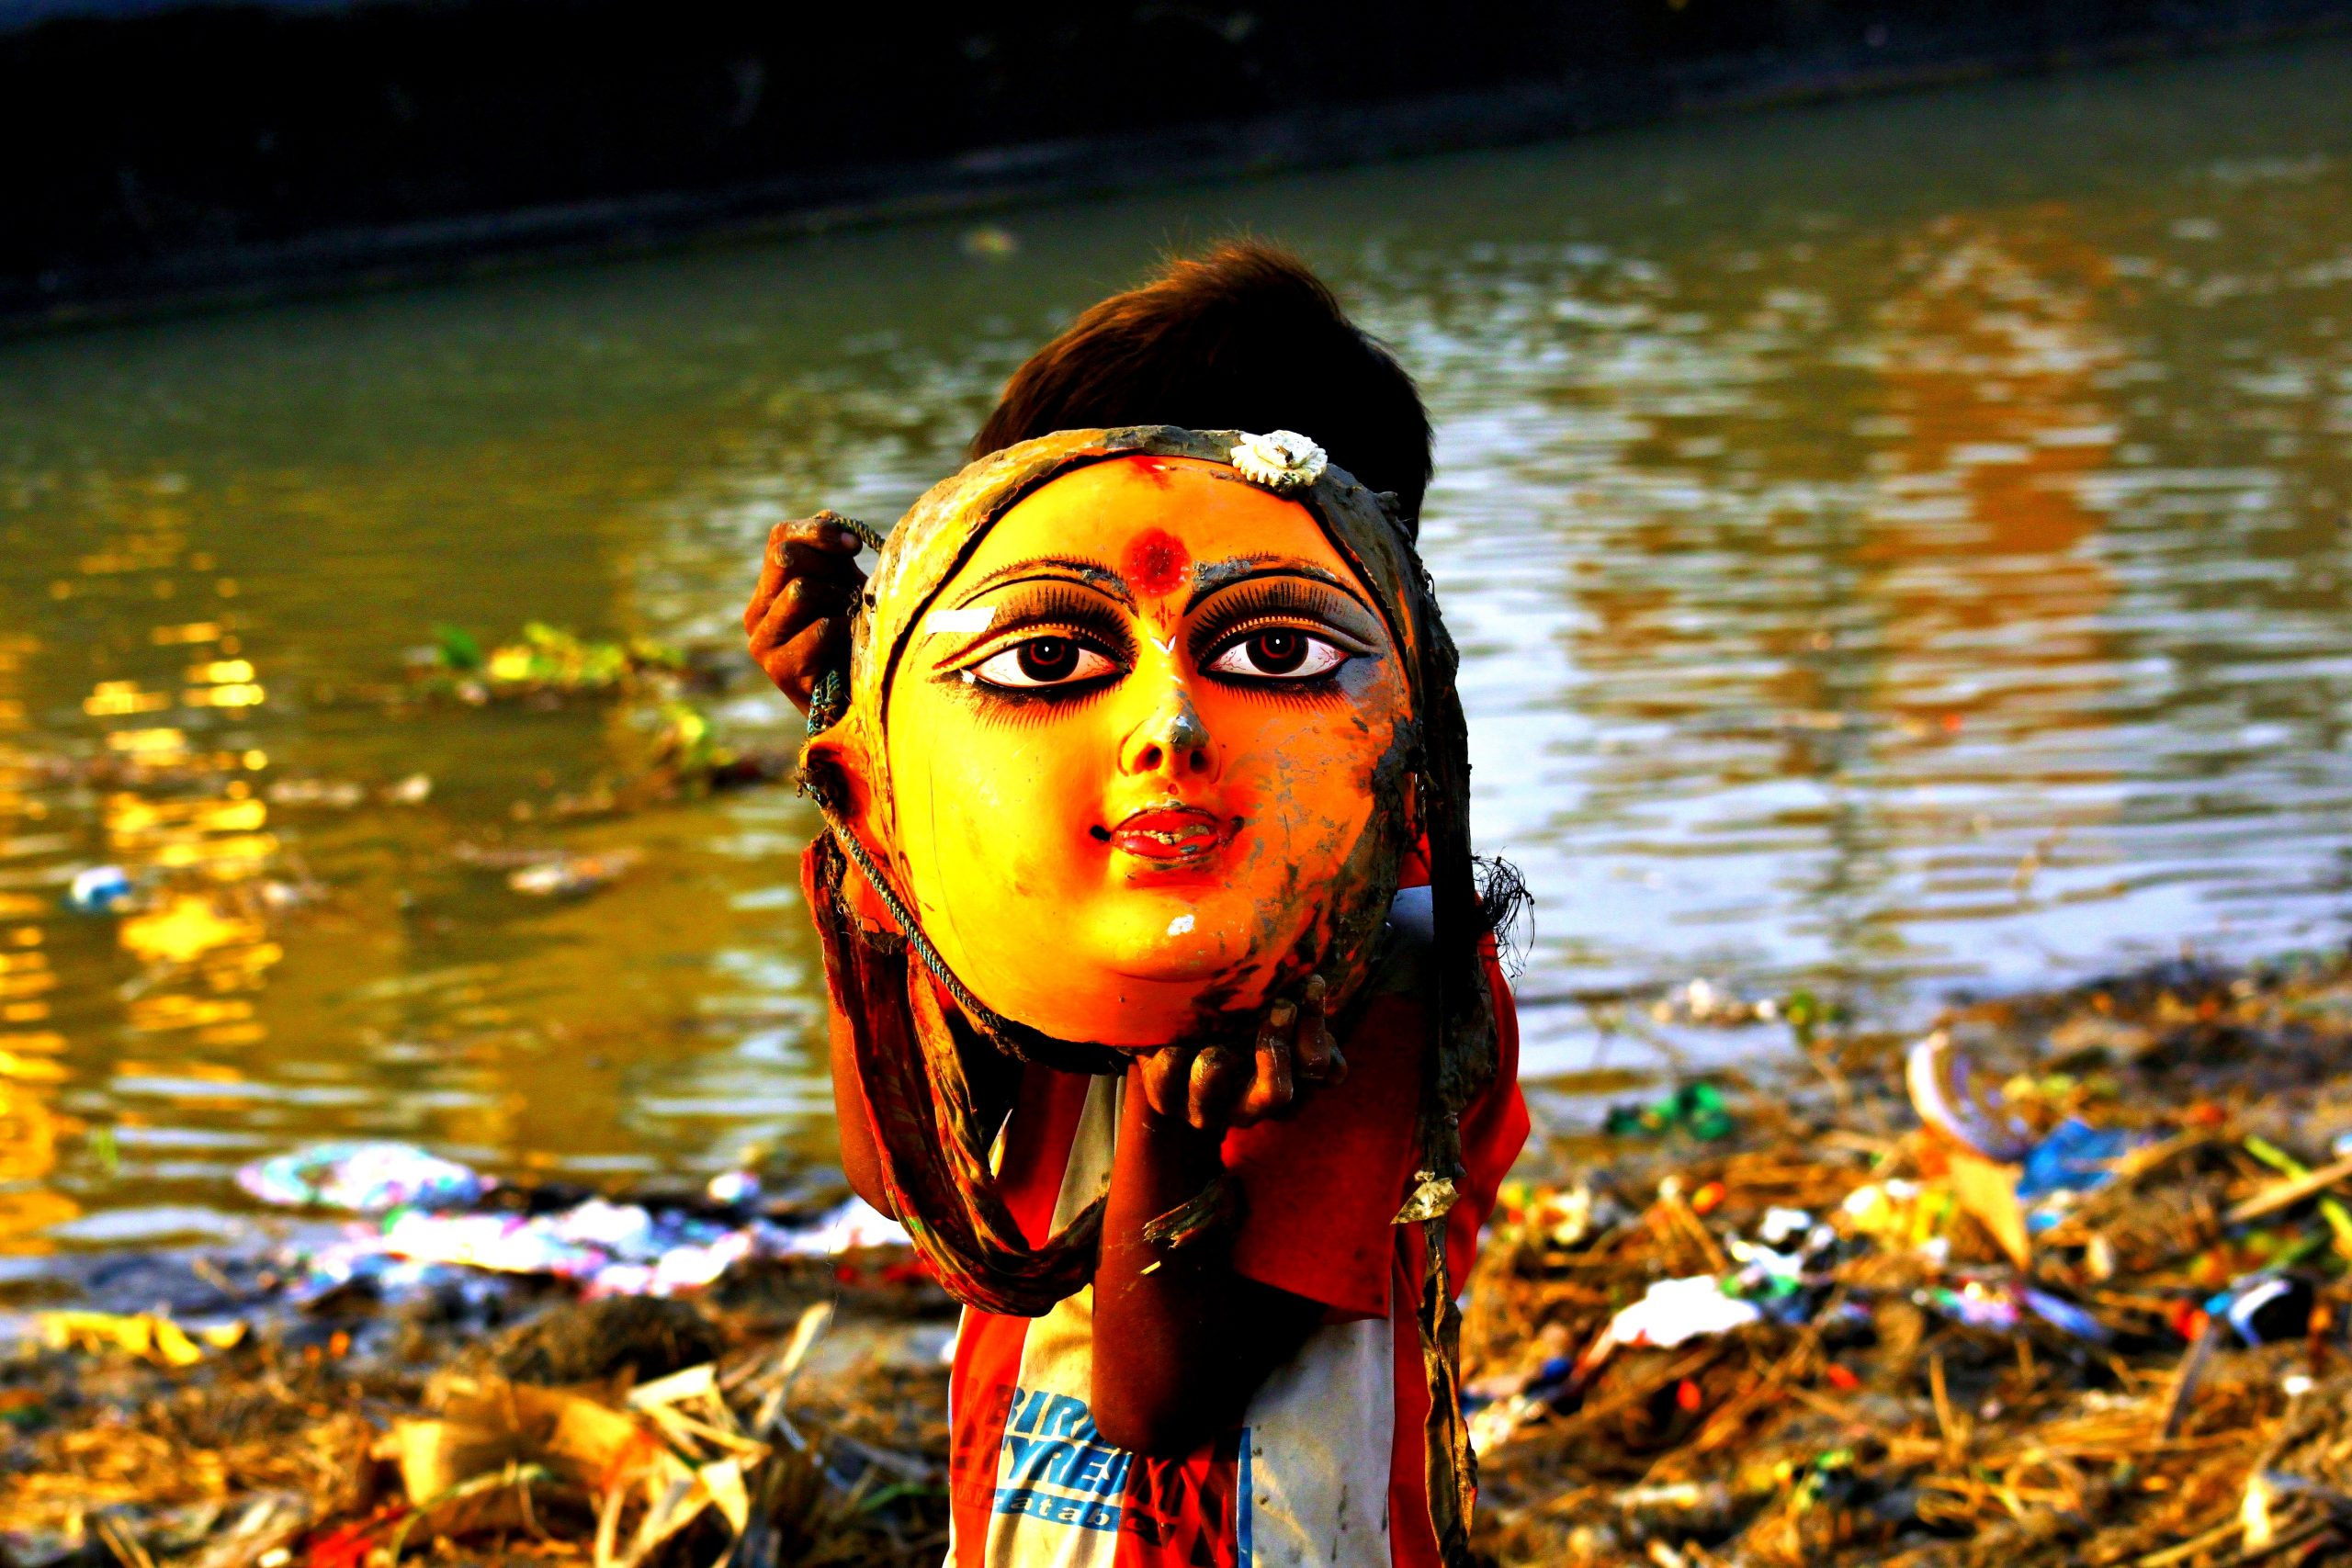 Face of goddess after immersion in river